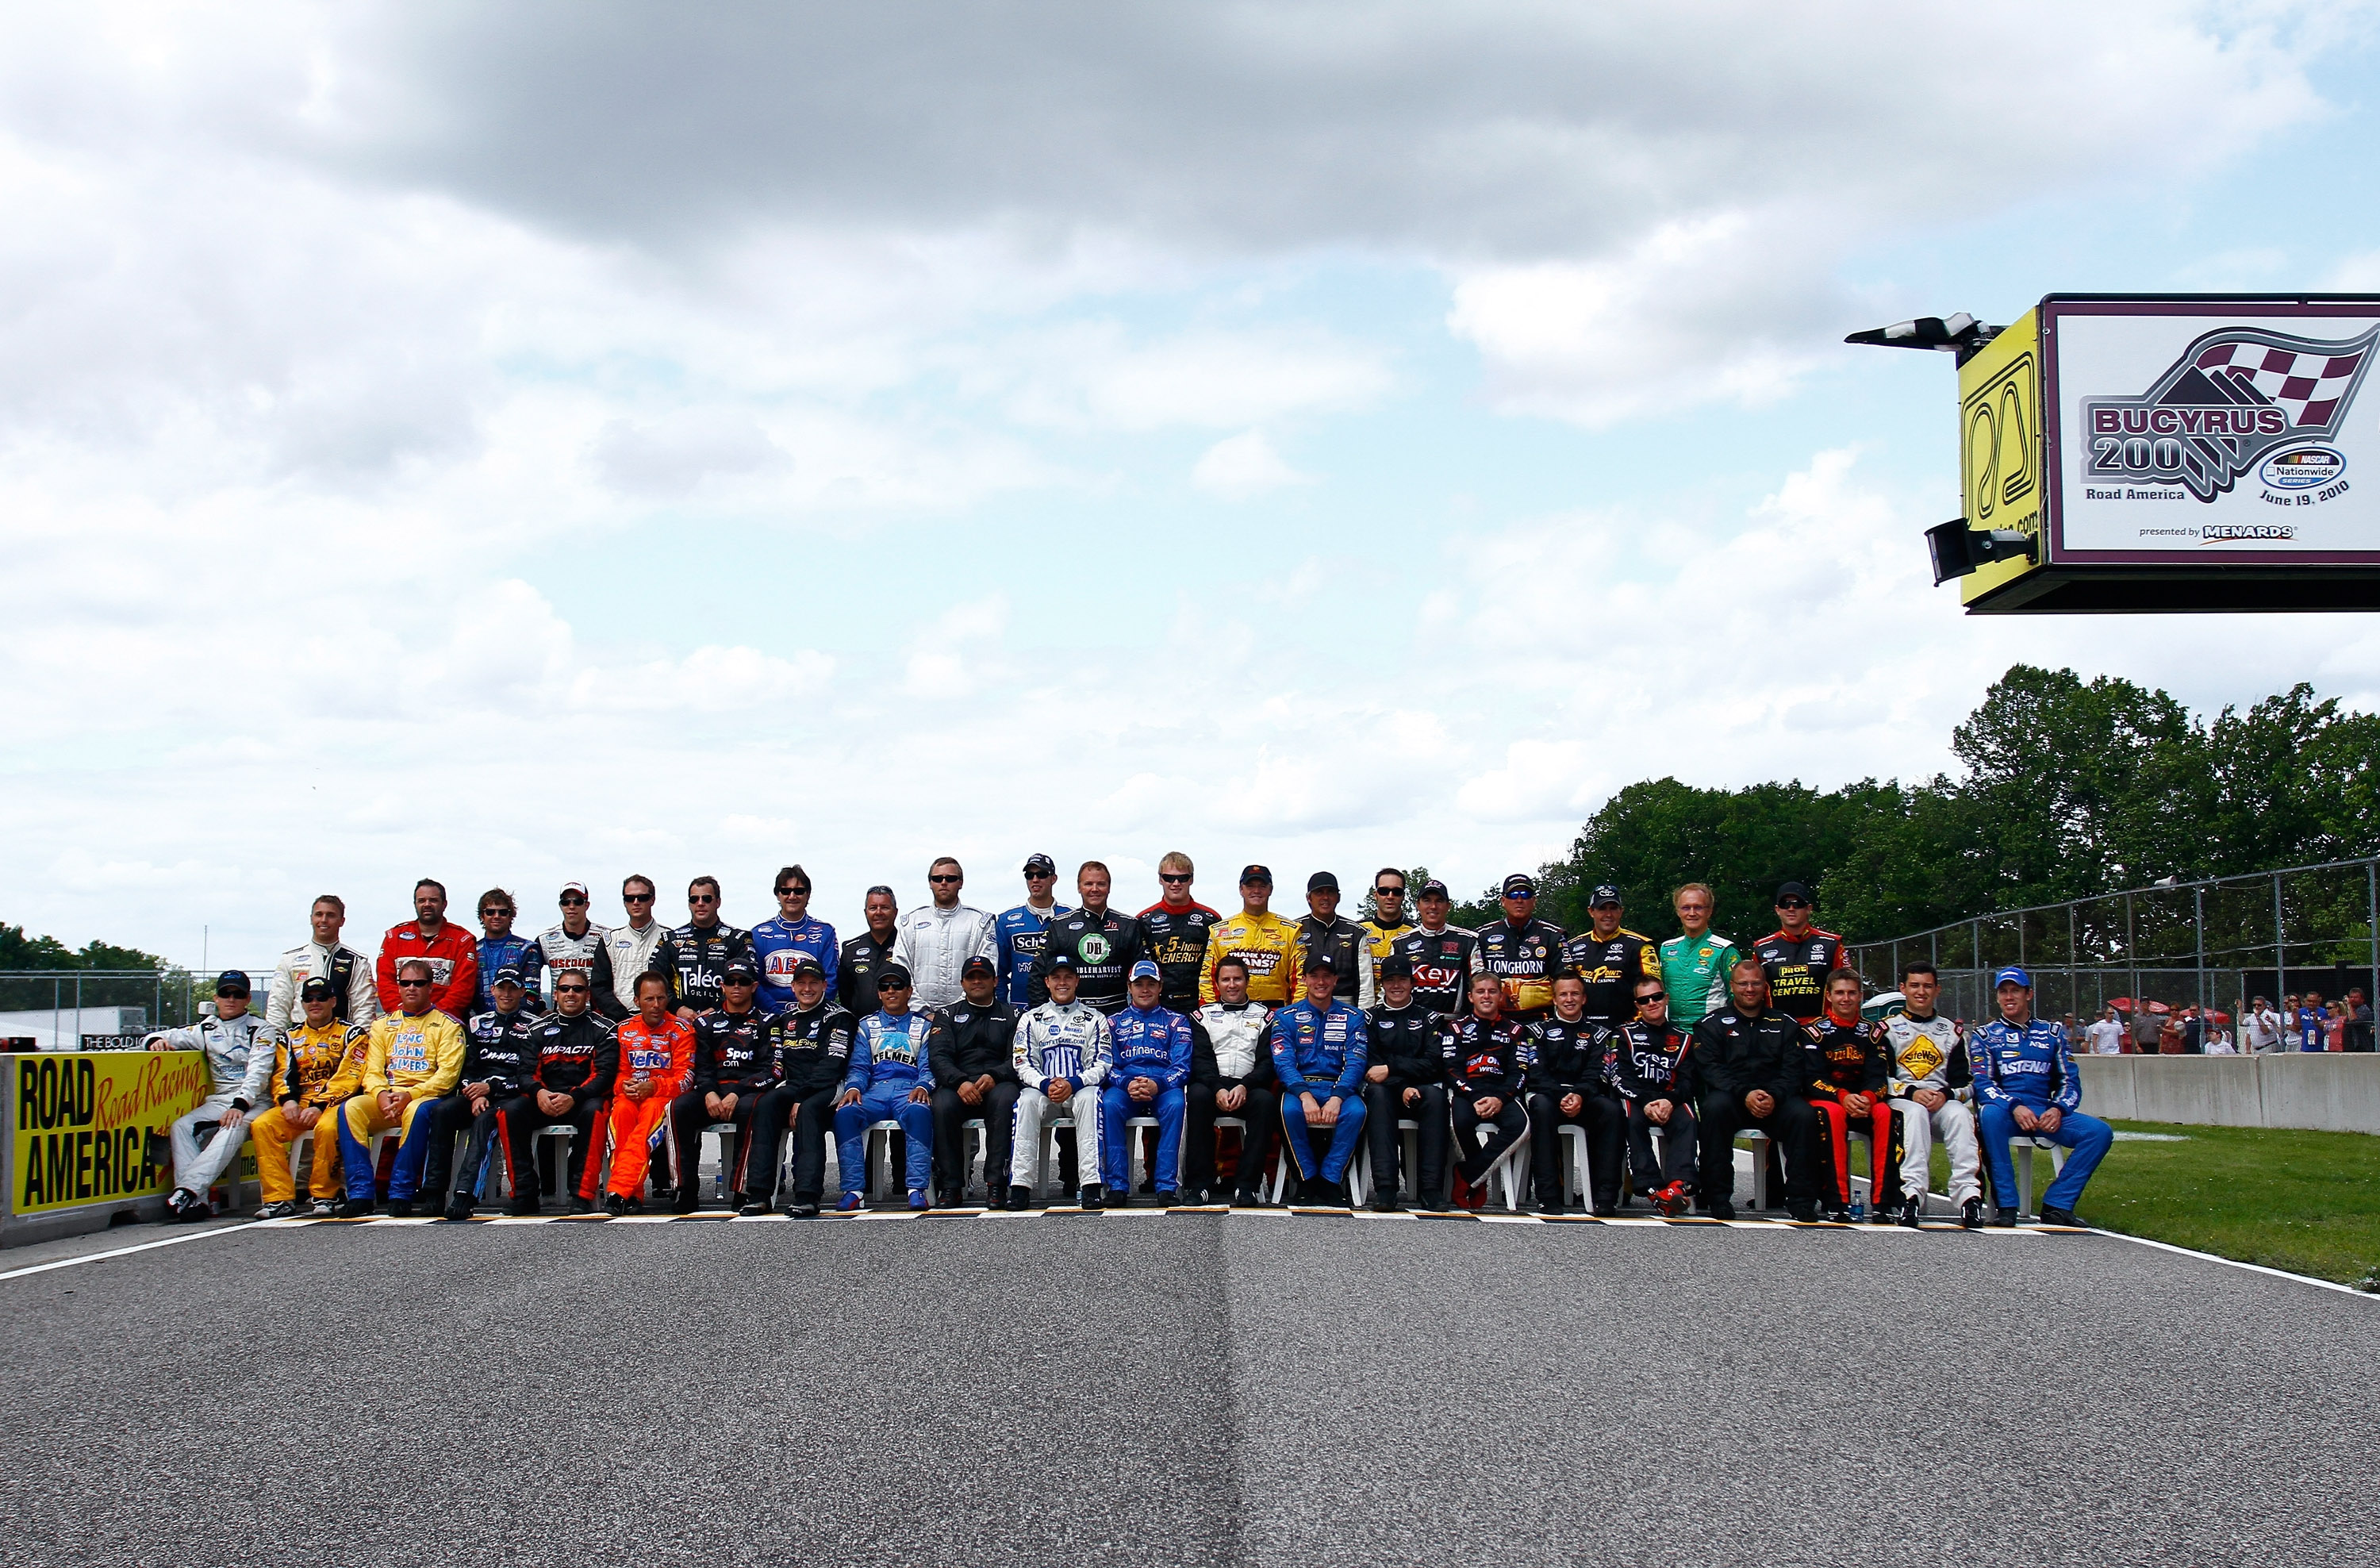 ELKHART LAKE, WI - JUNE 19: A general view of the participating starting line-up of the Nationwide Series Bucyrus 200 pose at Road America on June 19, 2010 in Elkhart Lake, Wisconsin. (Photo by Jason Smith/Getty Images for NASCAR)